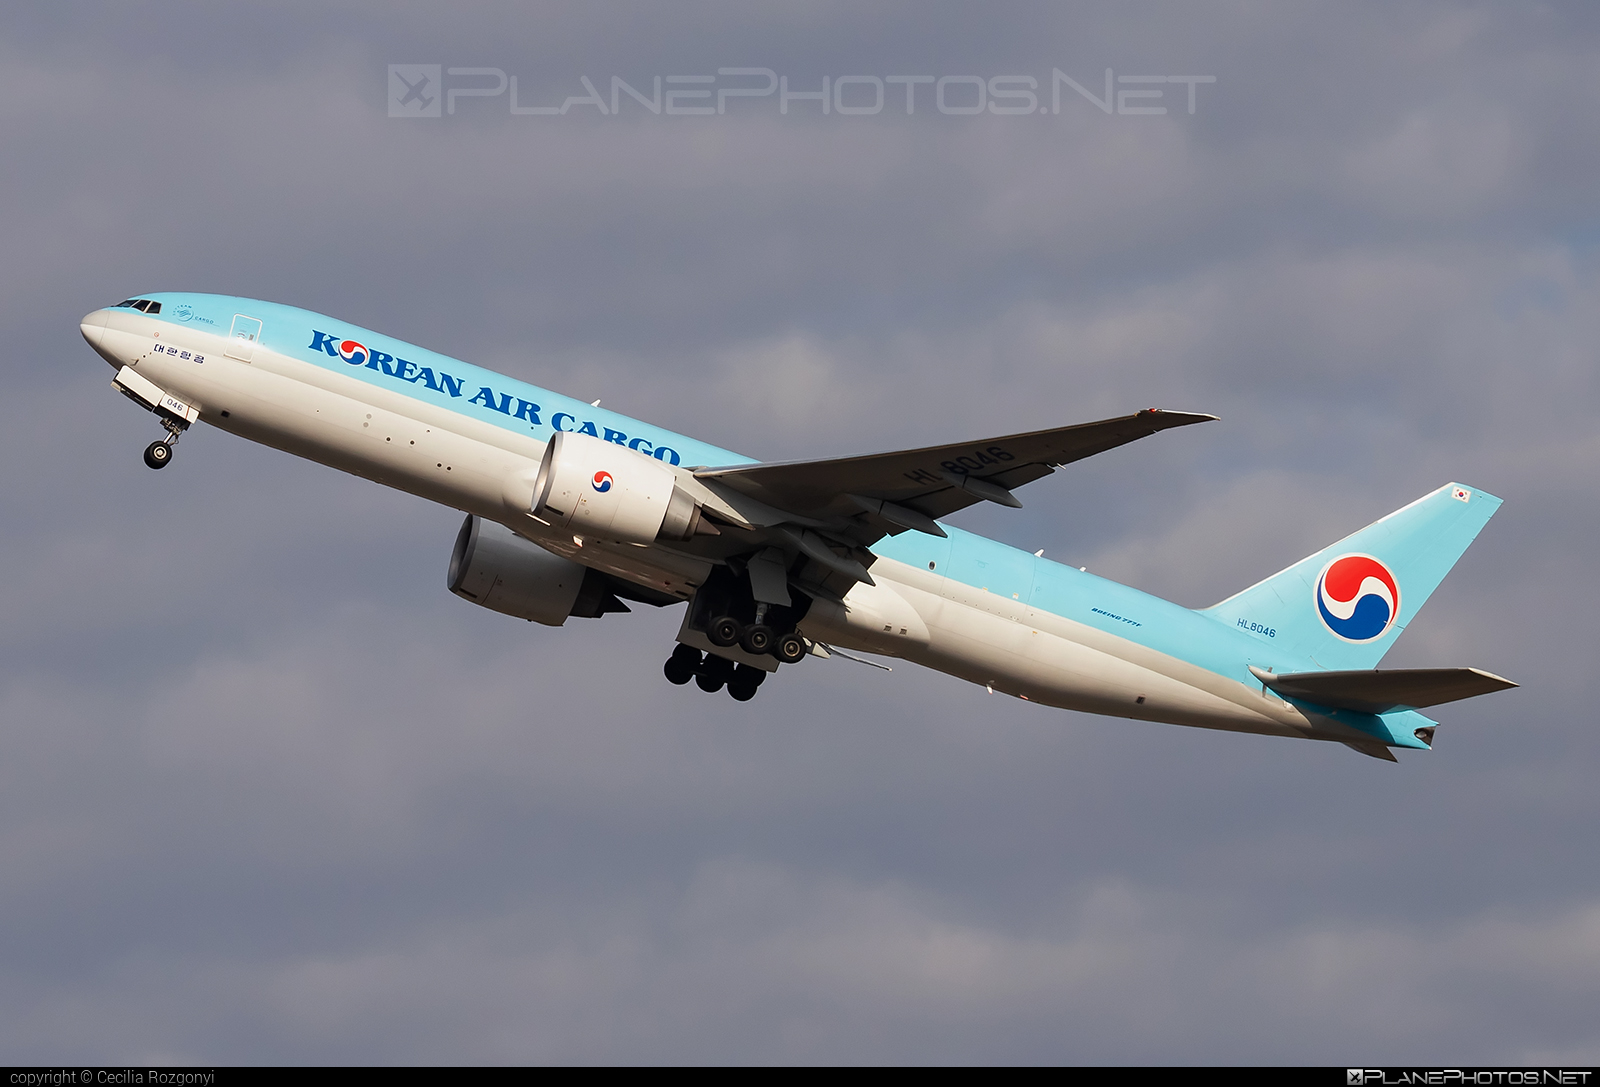 Boeing 777F - HL8046 operated by Korean Air Cargo #b777 #b777f #b777freighter #boeing #boeing777 #koreanair #koreanaircargo #tripleseven